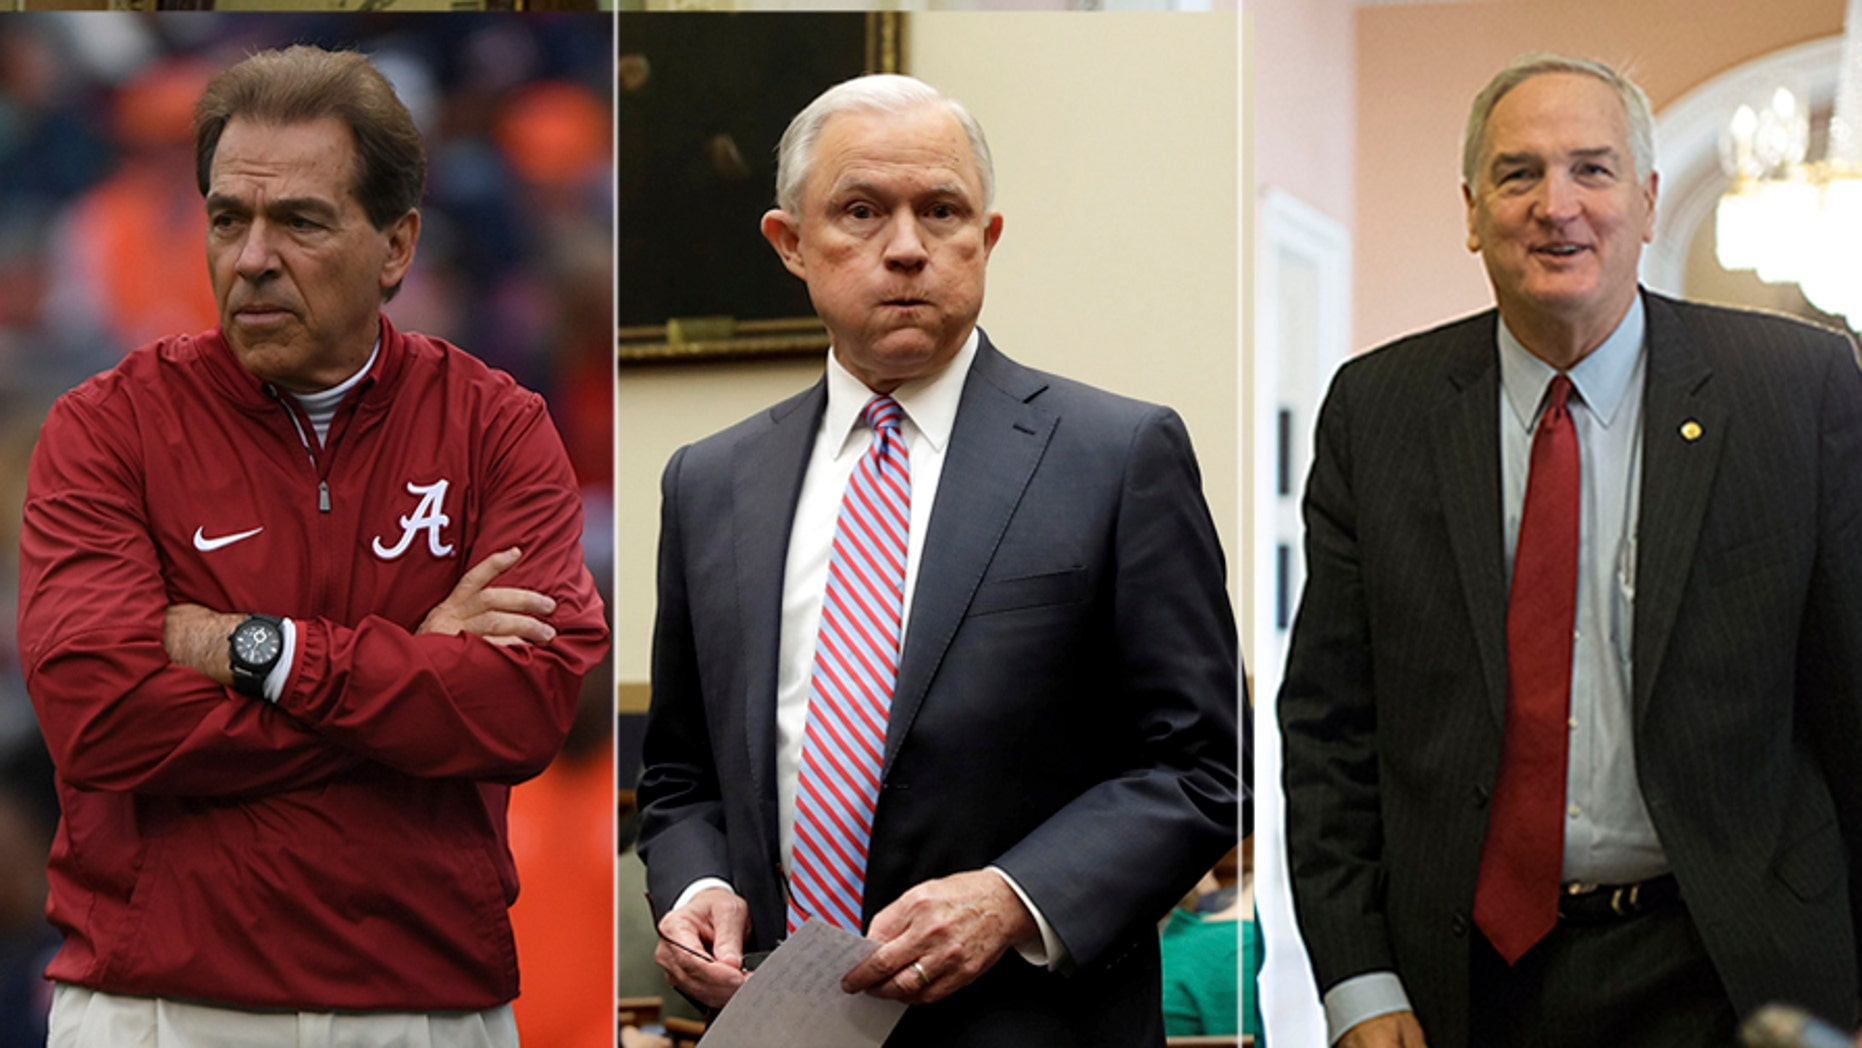 University of Alabama football coach Nick Saban, Attorney General Jeff Sessions and outgoing GOP Sen. Luther Strange are believed to have received write-in votes in Tuesday's Senate race.